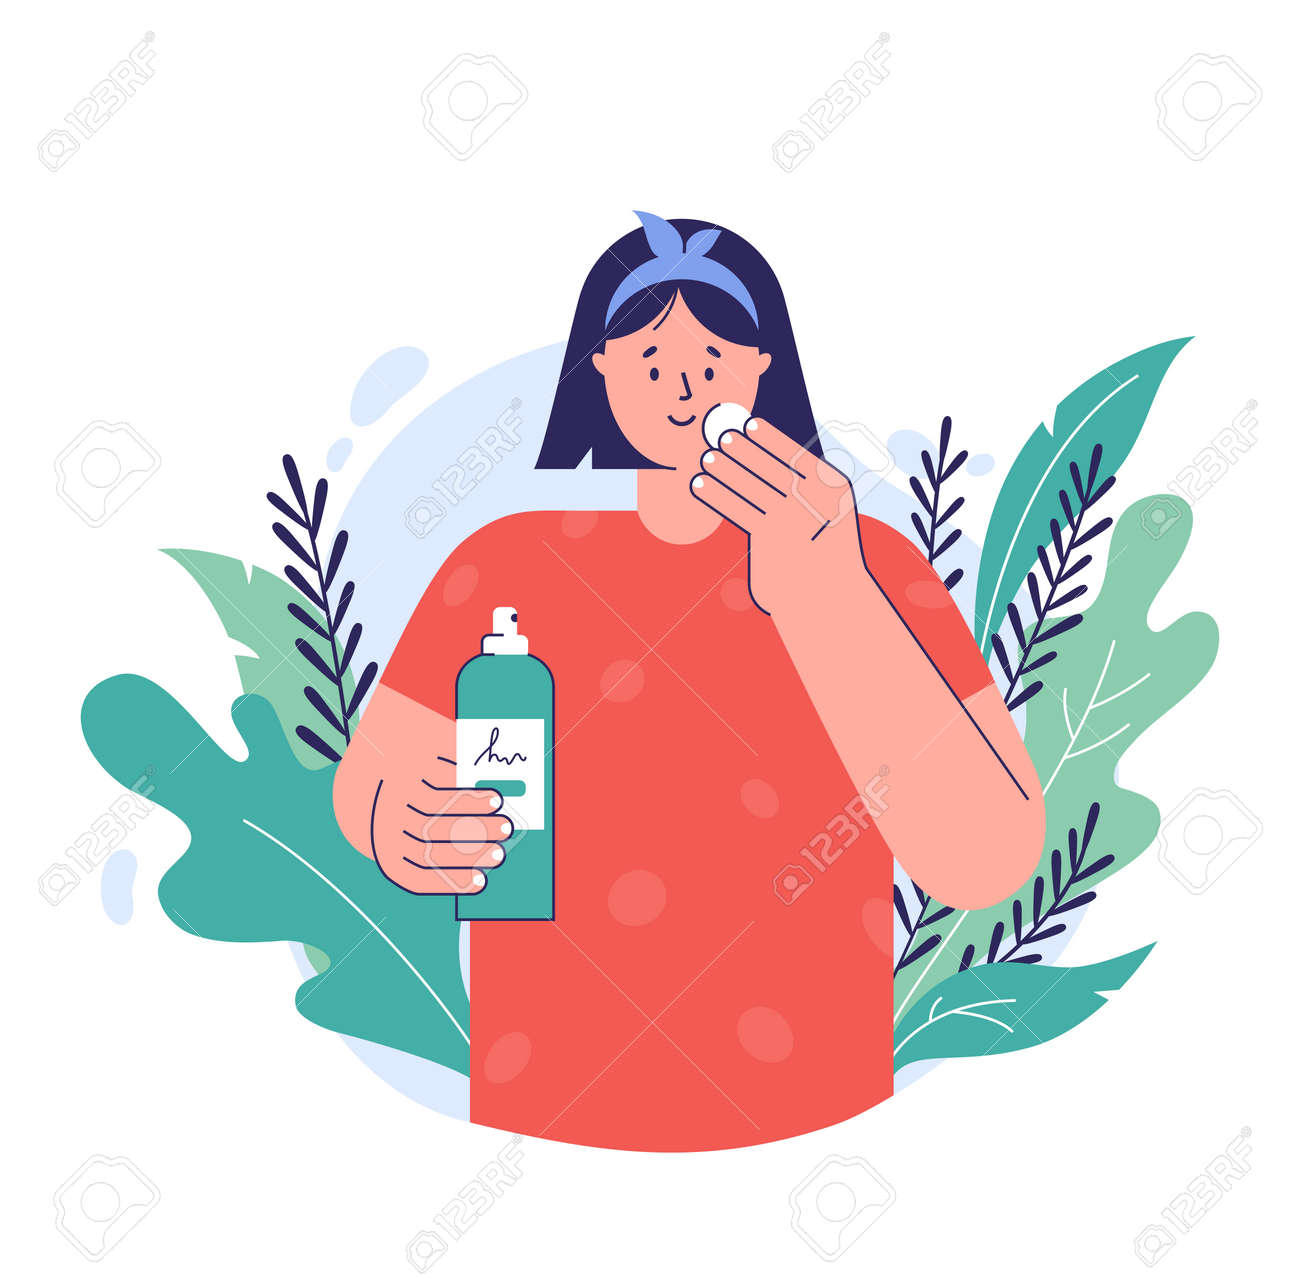 Skin care concept. A young woman applying tonic to cotton disc on her face. Natural cosmetic beauty product. Facial skincare. Vector illustration in a trendy flat style. - 162606006